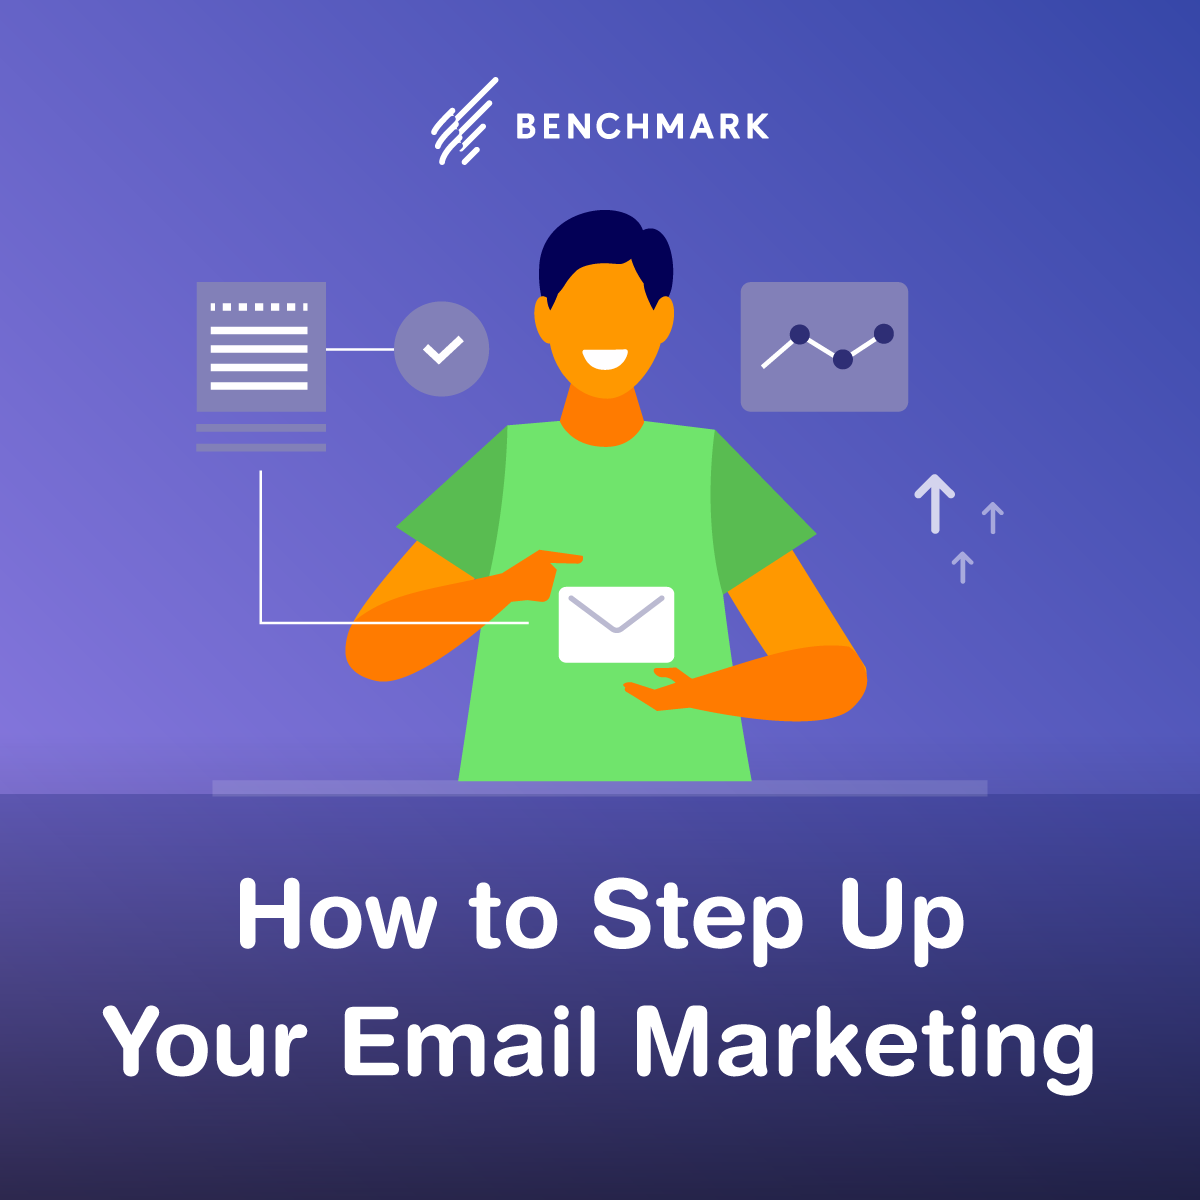 How to Step Up Your Email Marketing